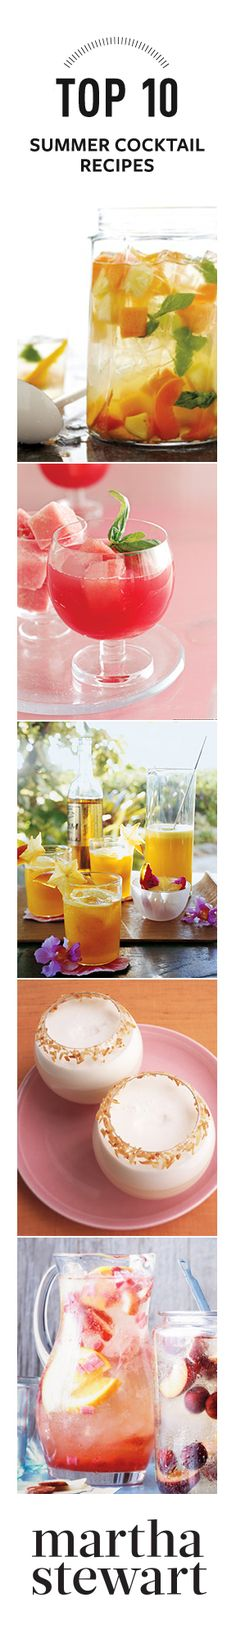 Top 10 Summer Cocktail Recipes from Martha Stewart